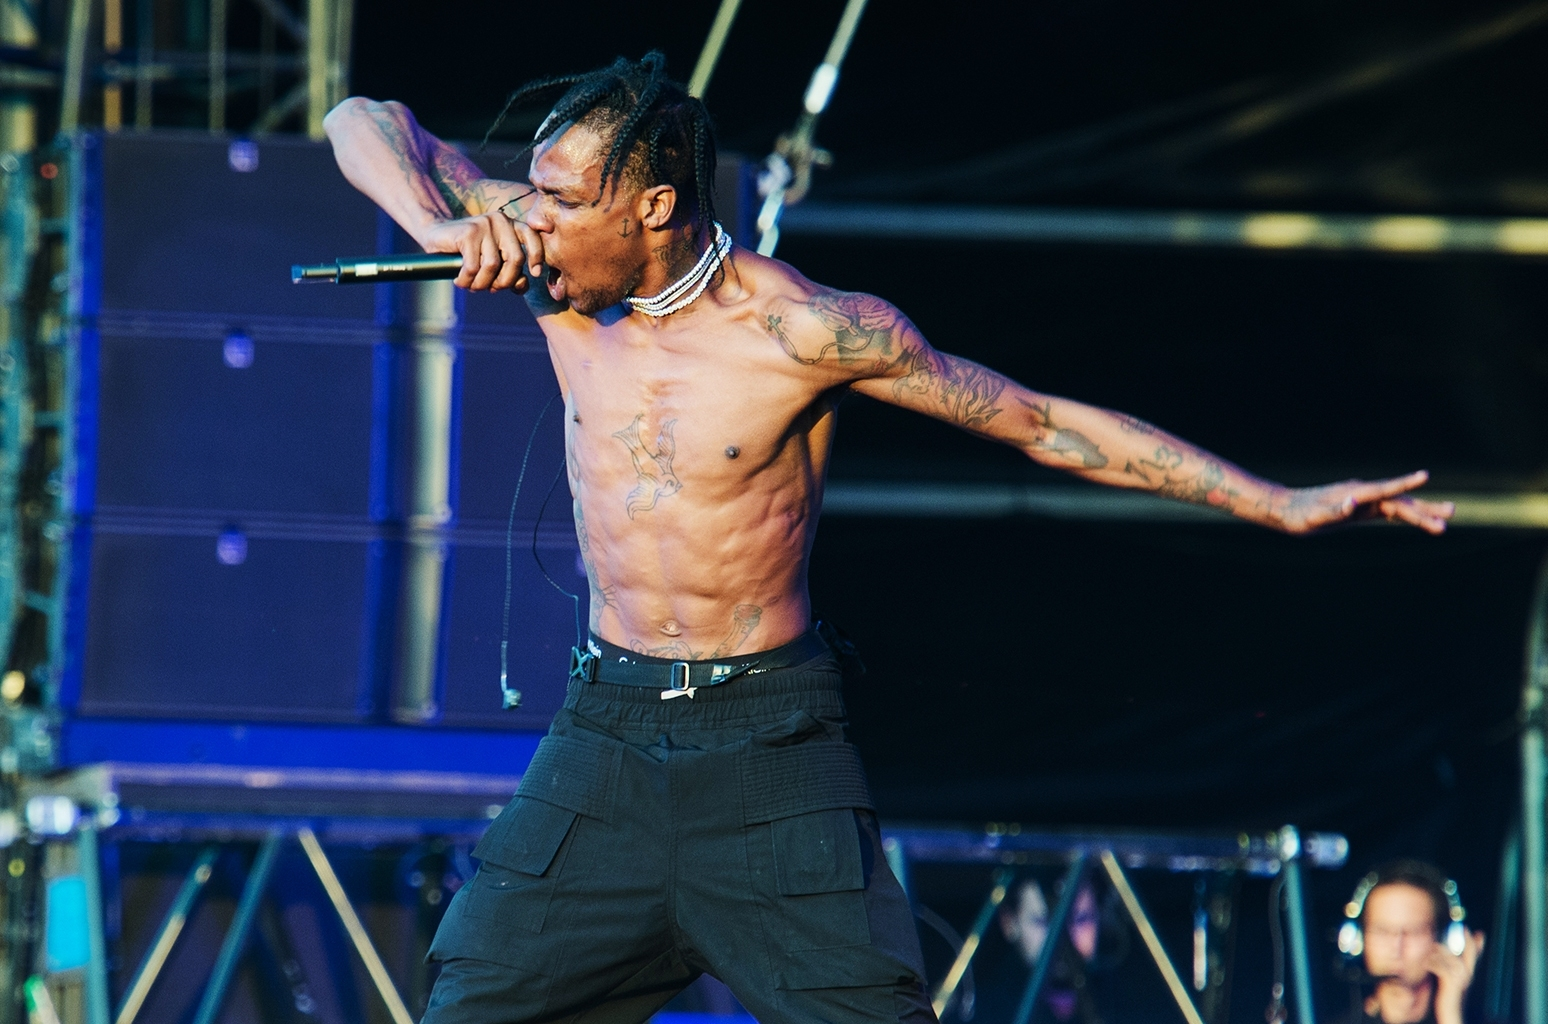 Super Bowl Prop Bets, From Travis Scott Going Shirtless To A pertaining to Andre 3000 Super Bowl